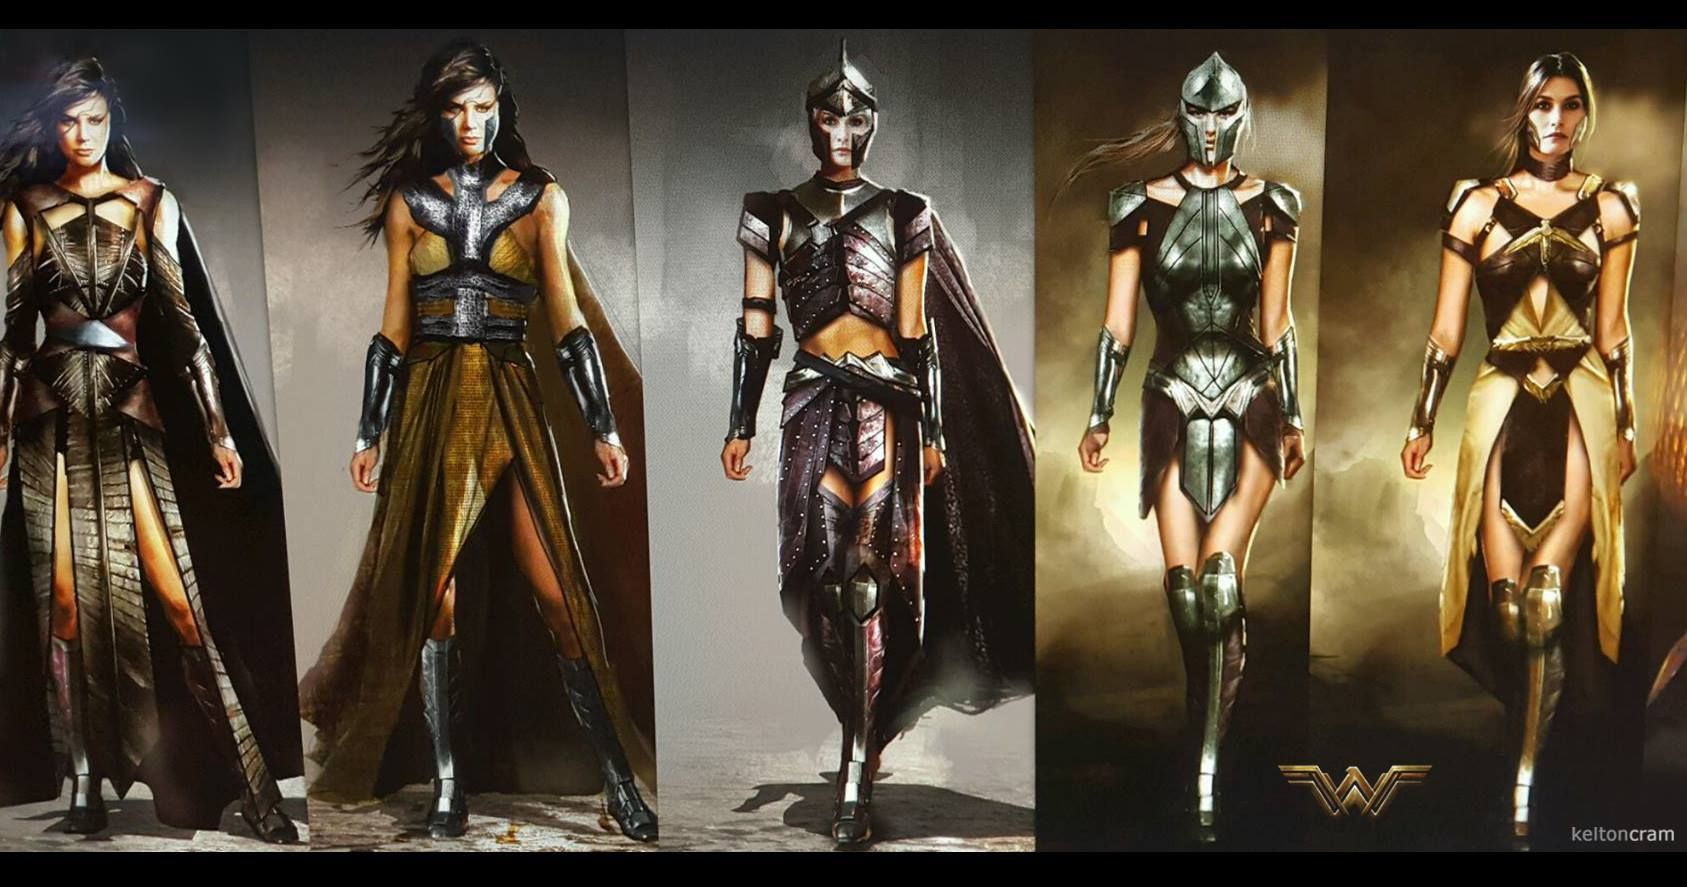 Spada Wonder Woman Wonderful Concept Art Of Wonder Woman And The Amazons